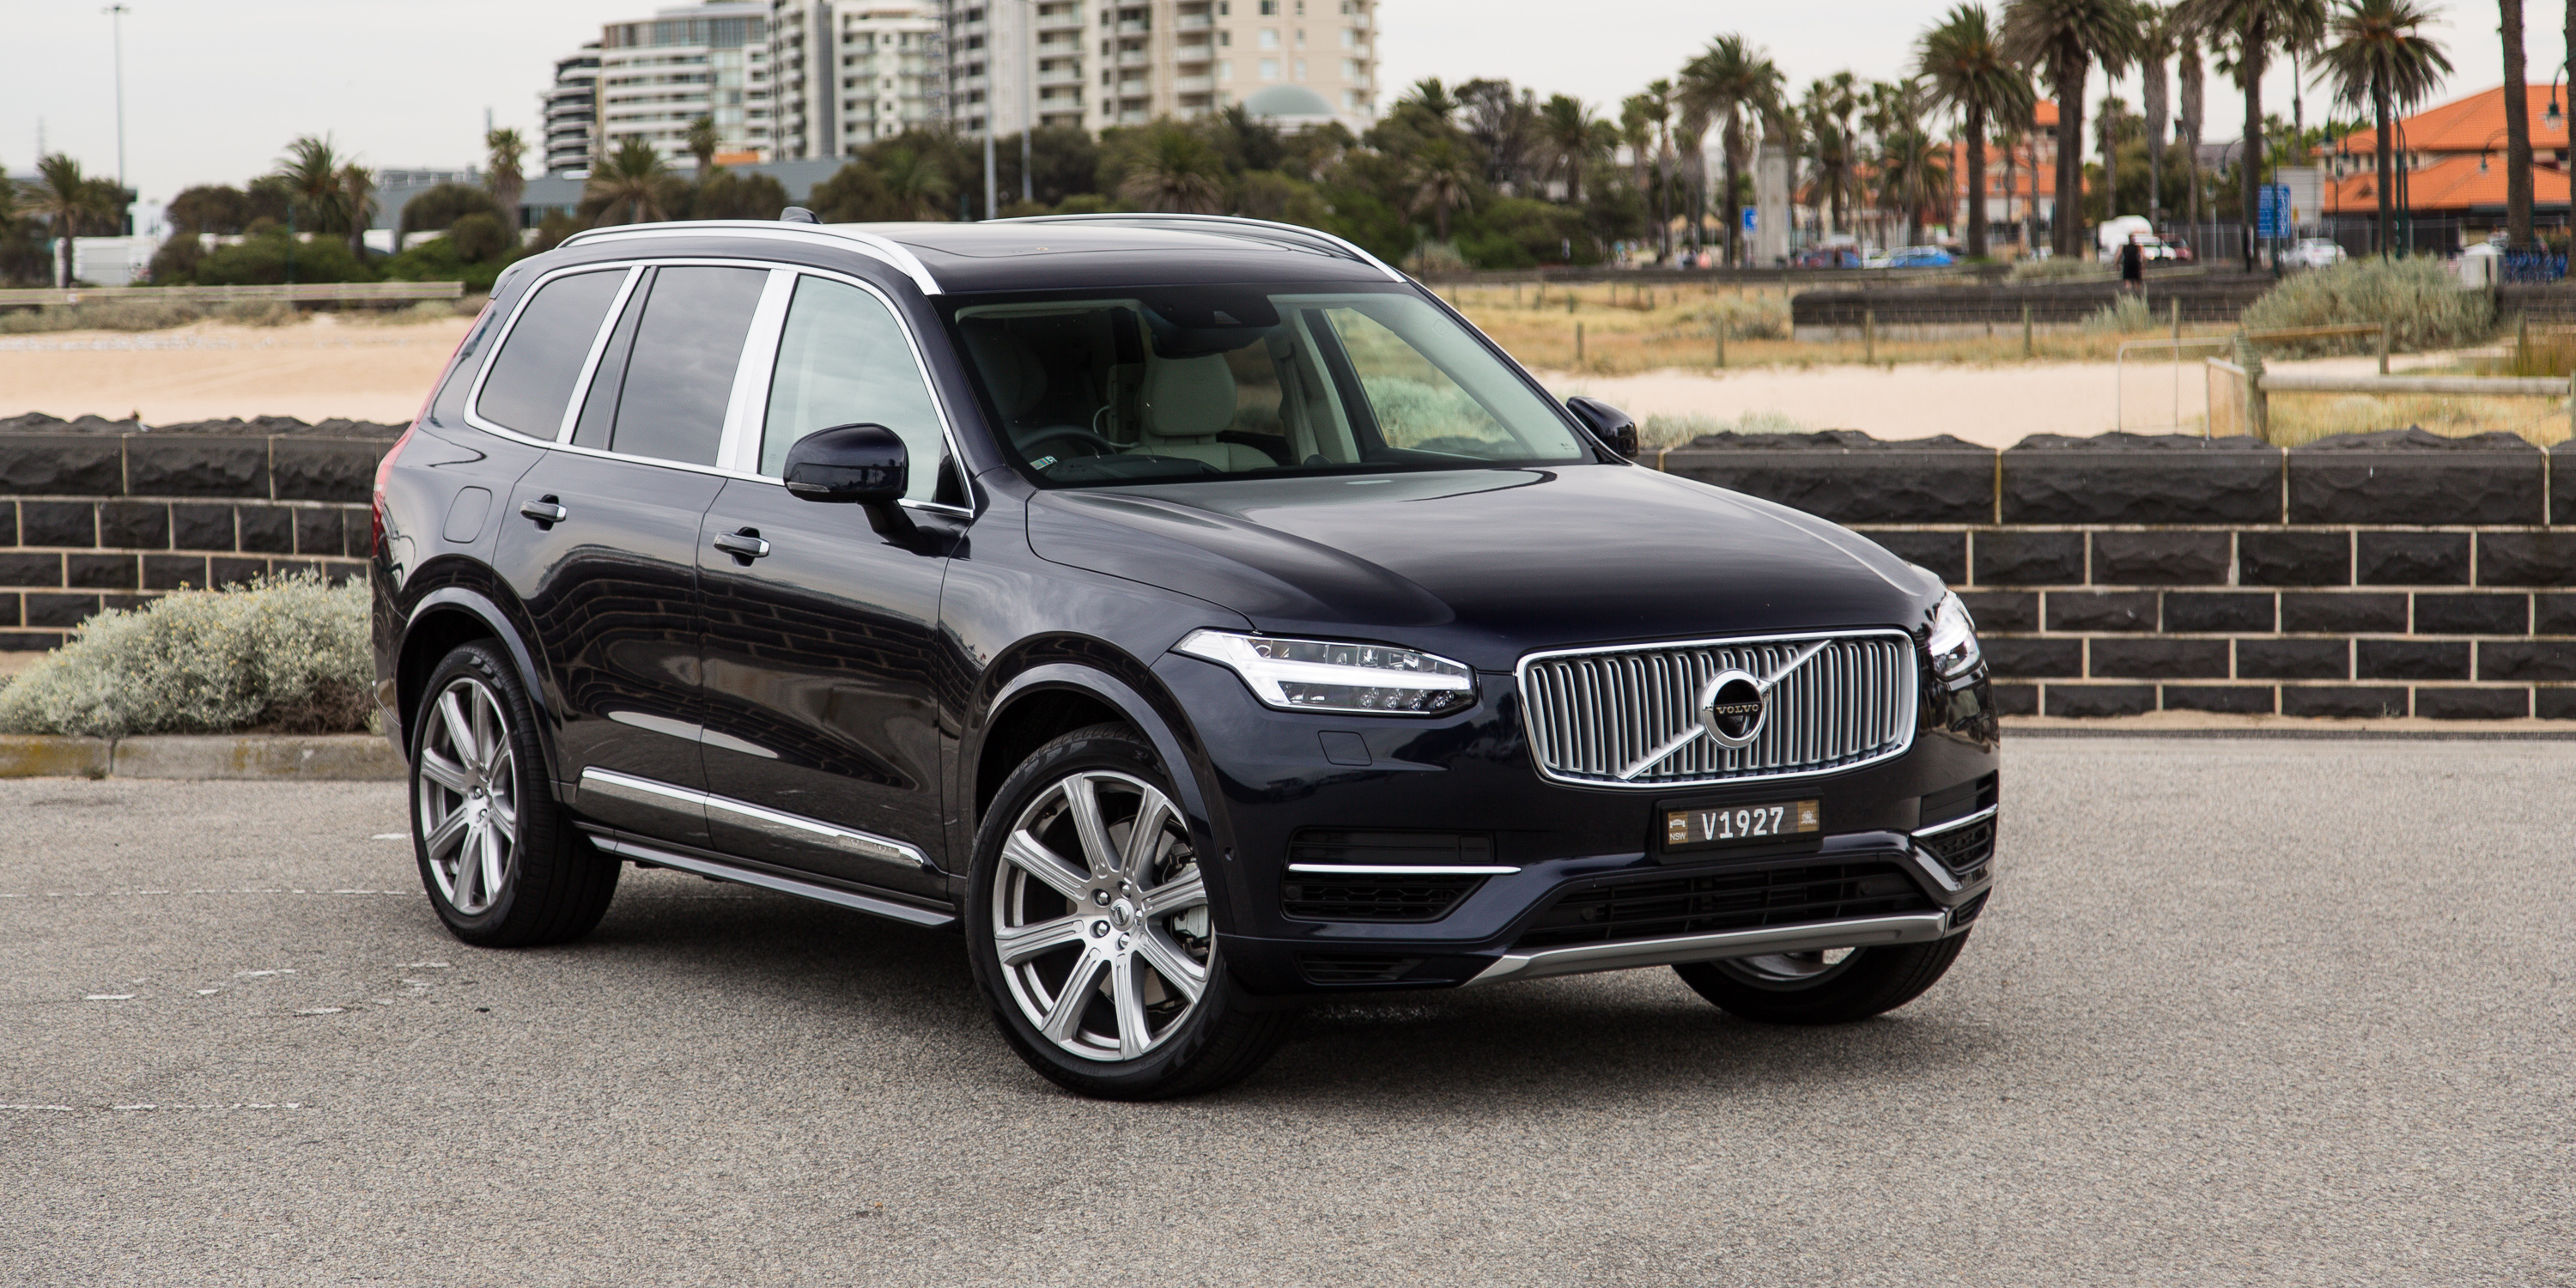 volvo xc90 photos photo gallery page 3. Black Bedroom Furniture Sets. Home Design Ideas